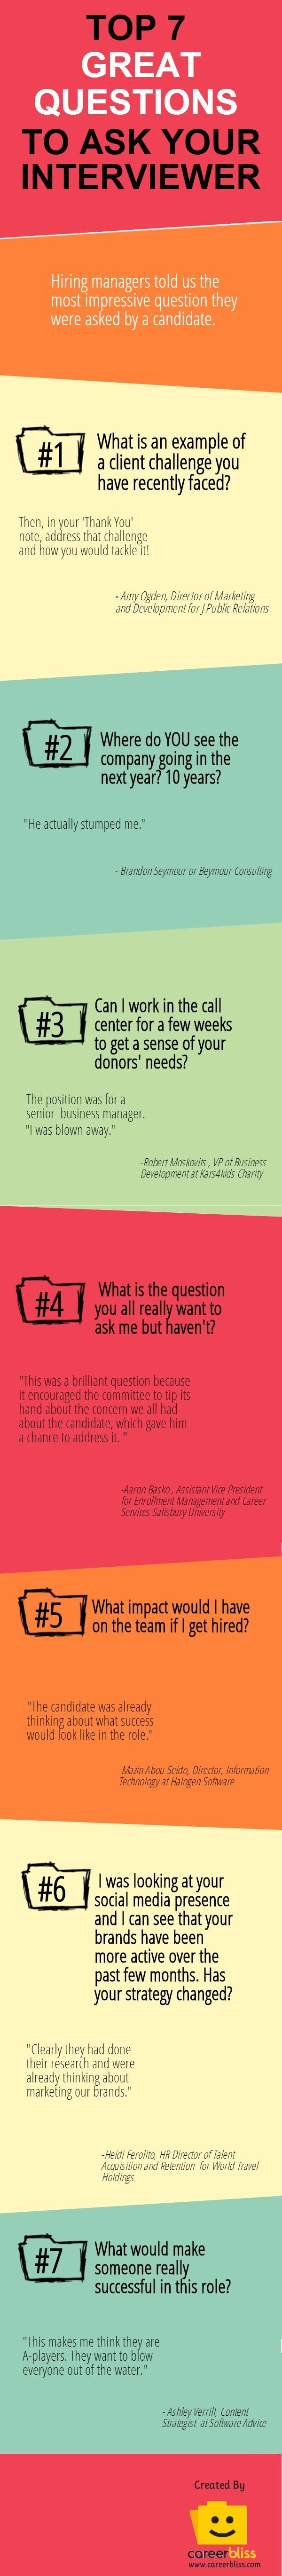 Interview questions to ask for research paper